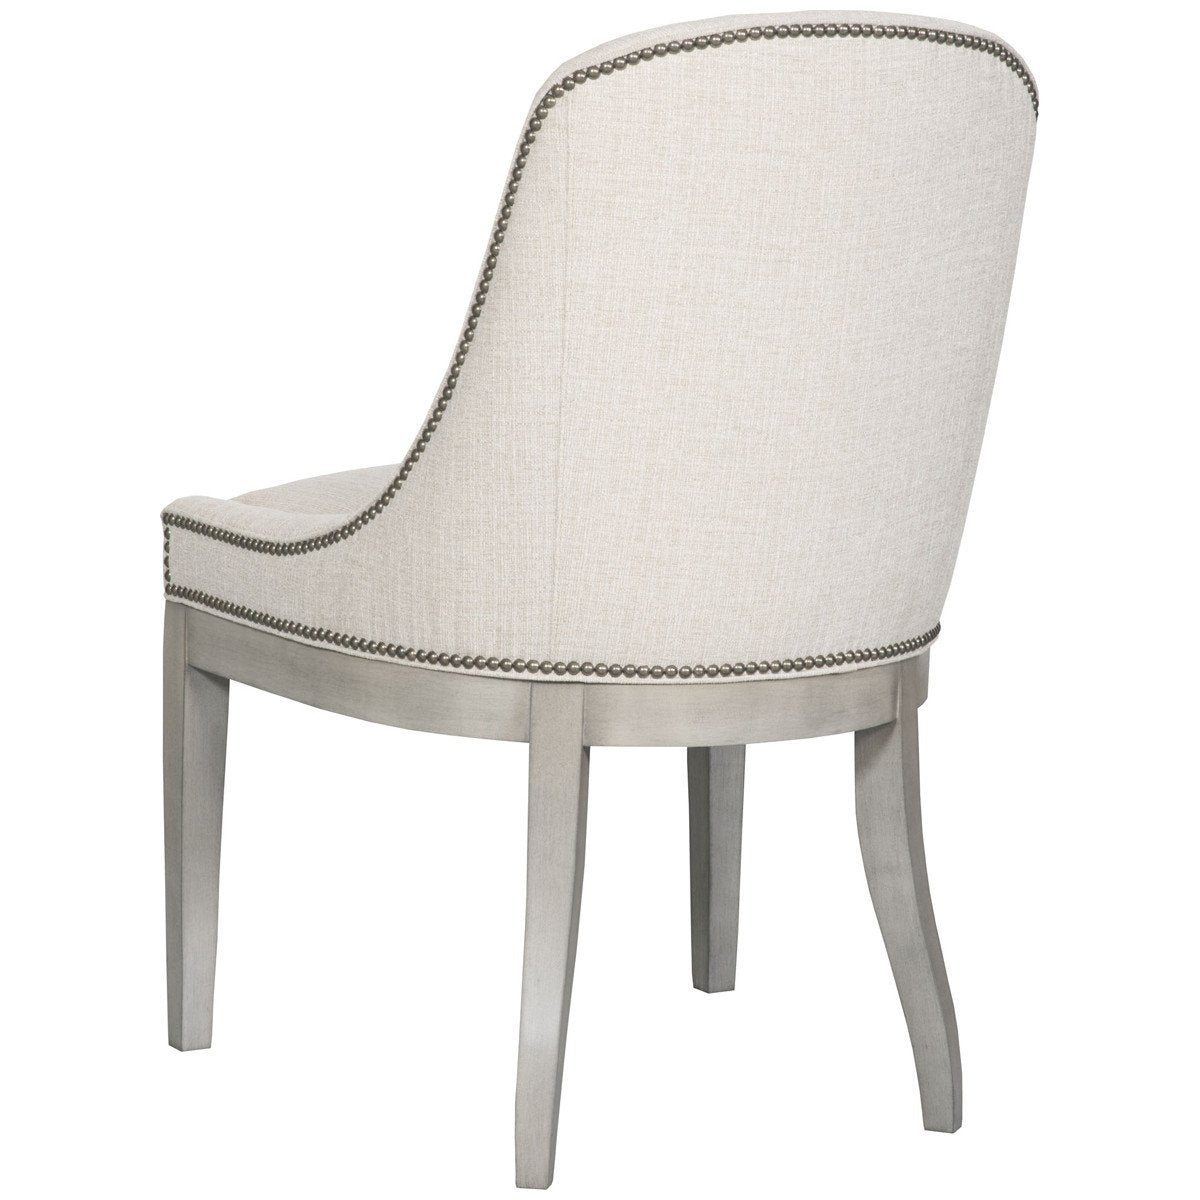 Vanguard Furniture Calloway Stocked Performance Dining Chair